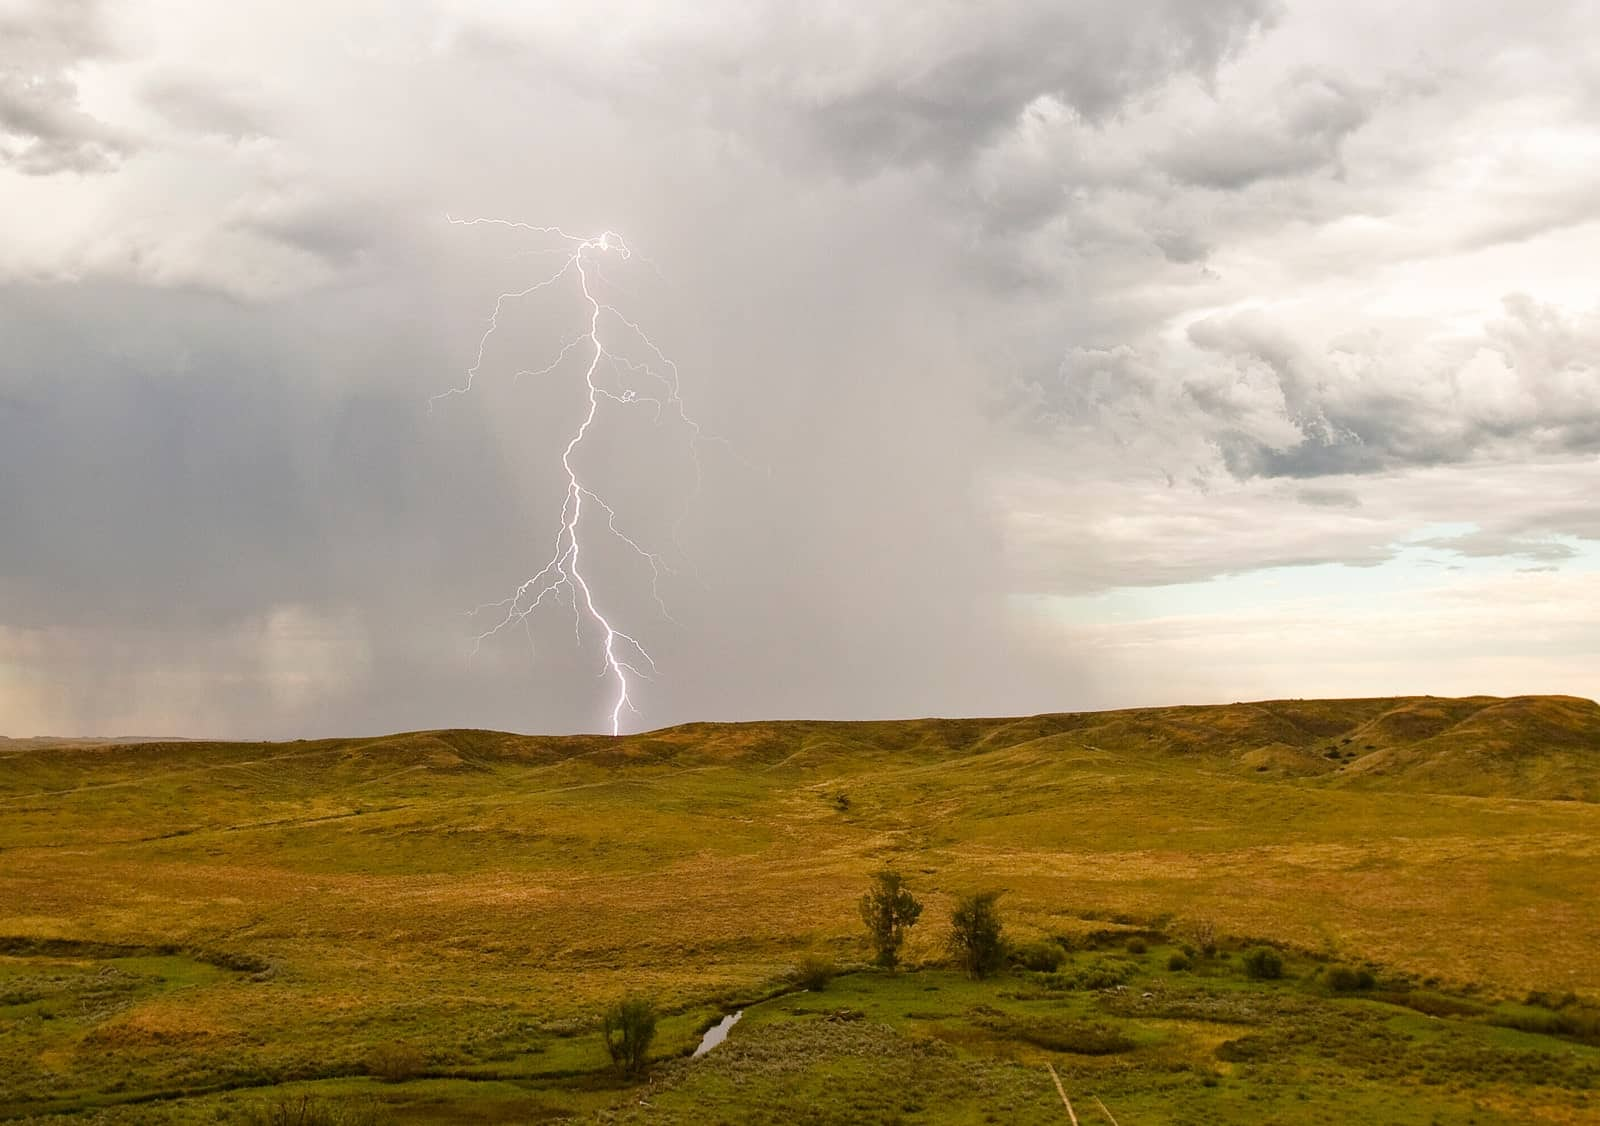 Lightning strikes in a field at Montana's American Prairie Reserve. Photograph by Dennis J. Lingohr